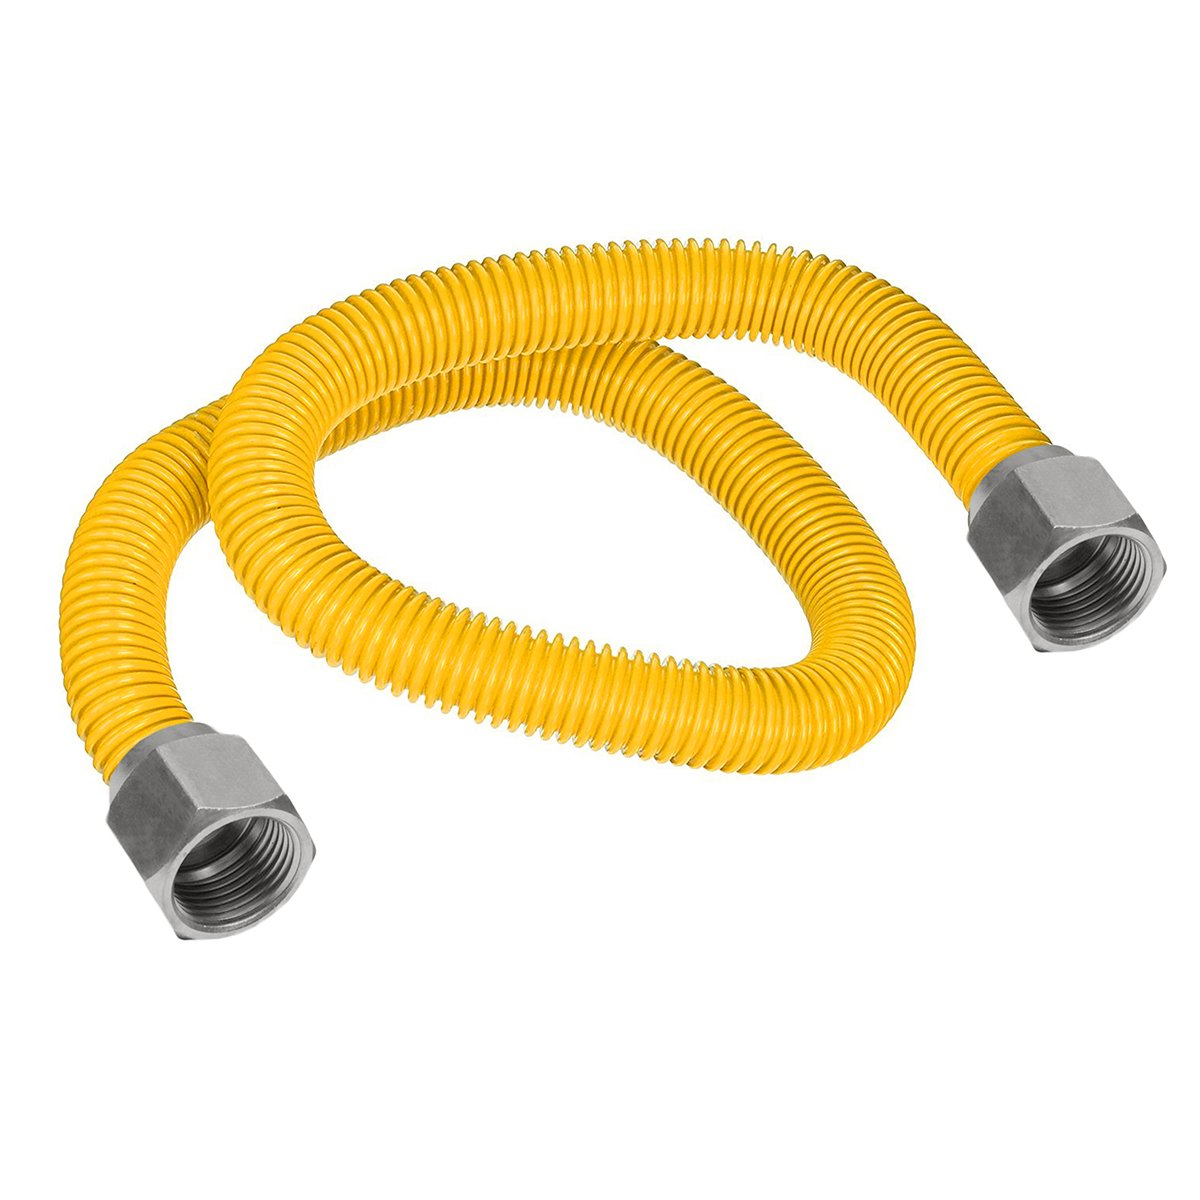 Flextron FTGC-YC38-12 10'' Flexible Epoxy Coated Gas Line Connector with 1/2'' Outer Diameter and Nut Fittings, Yellow/Stainless Steel